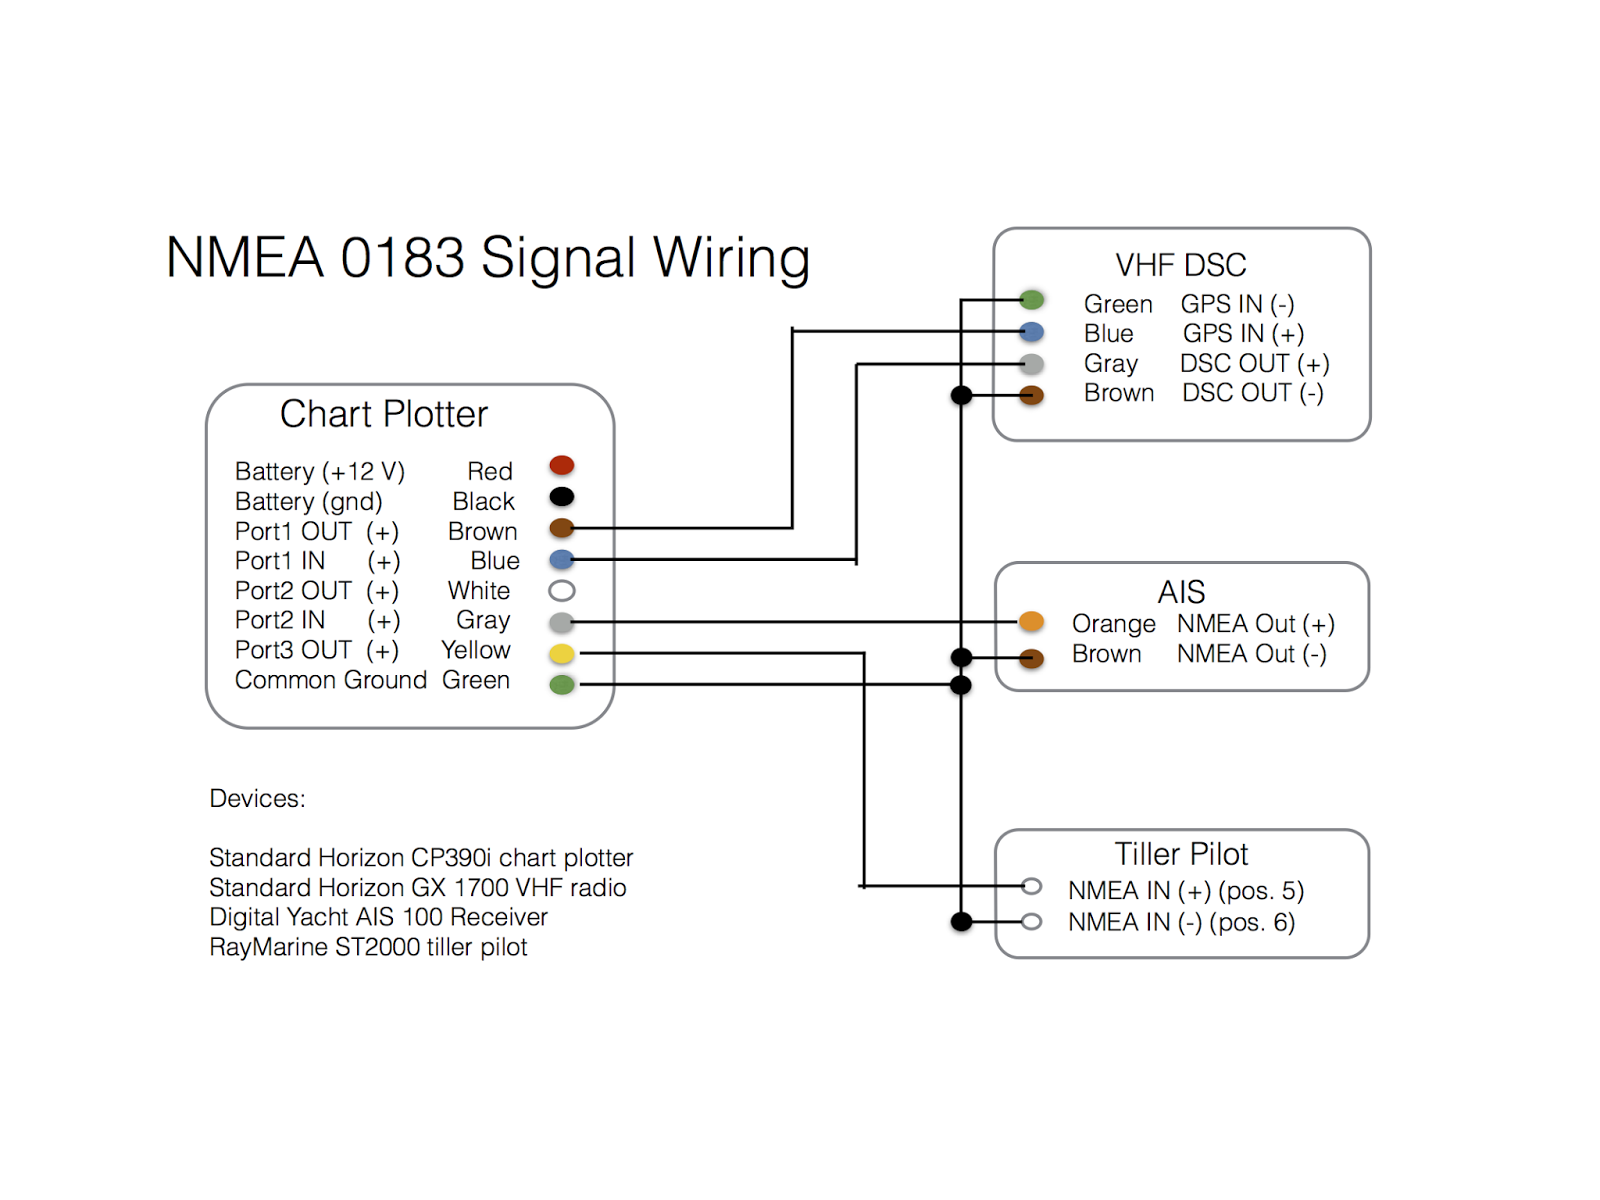 lowrance nmea 0183 wiring diagram free download connecting a chart plotter, vhf, ais receiver and tiller ... #4